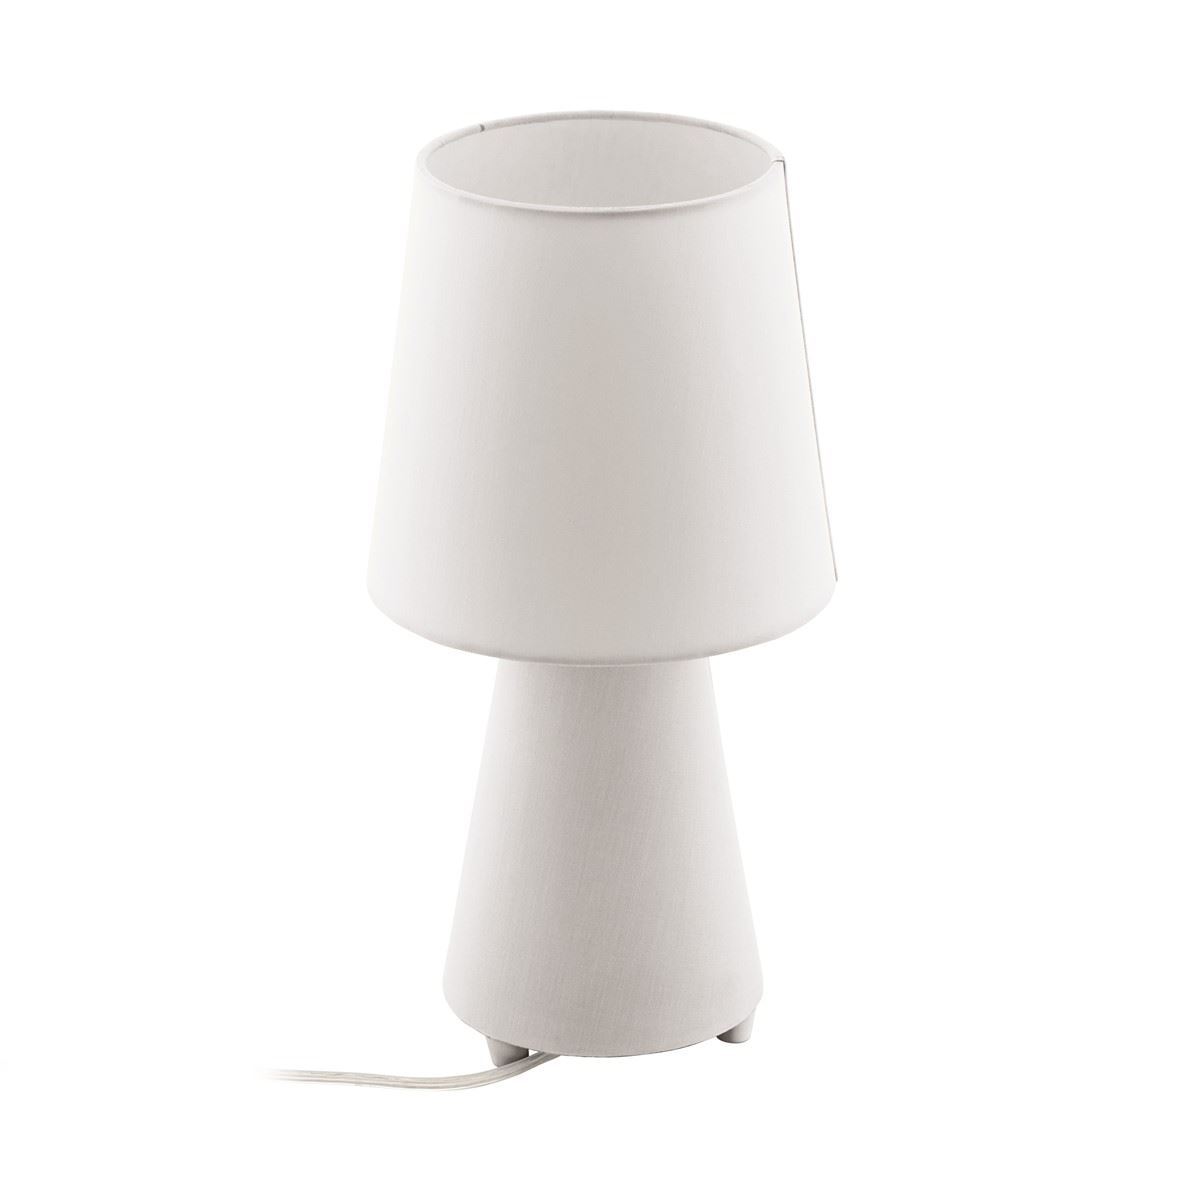 White Fabric Table Lamp With Shade For Bedside Table